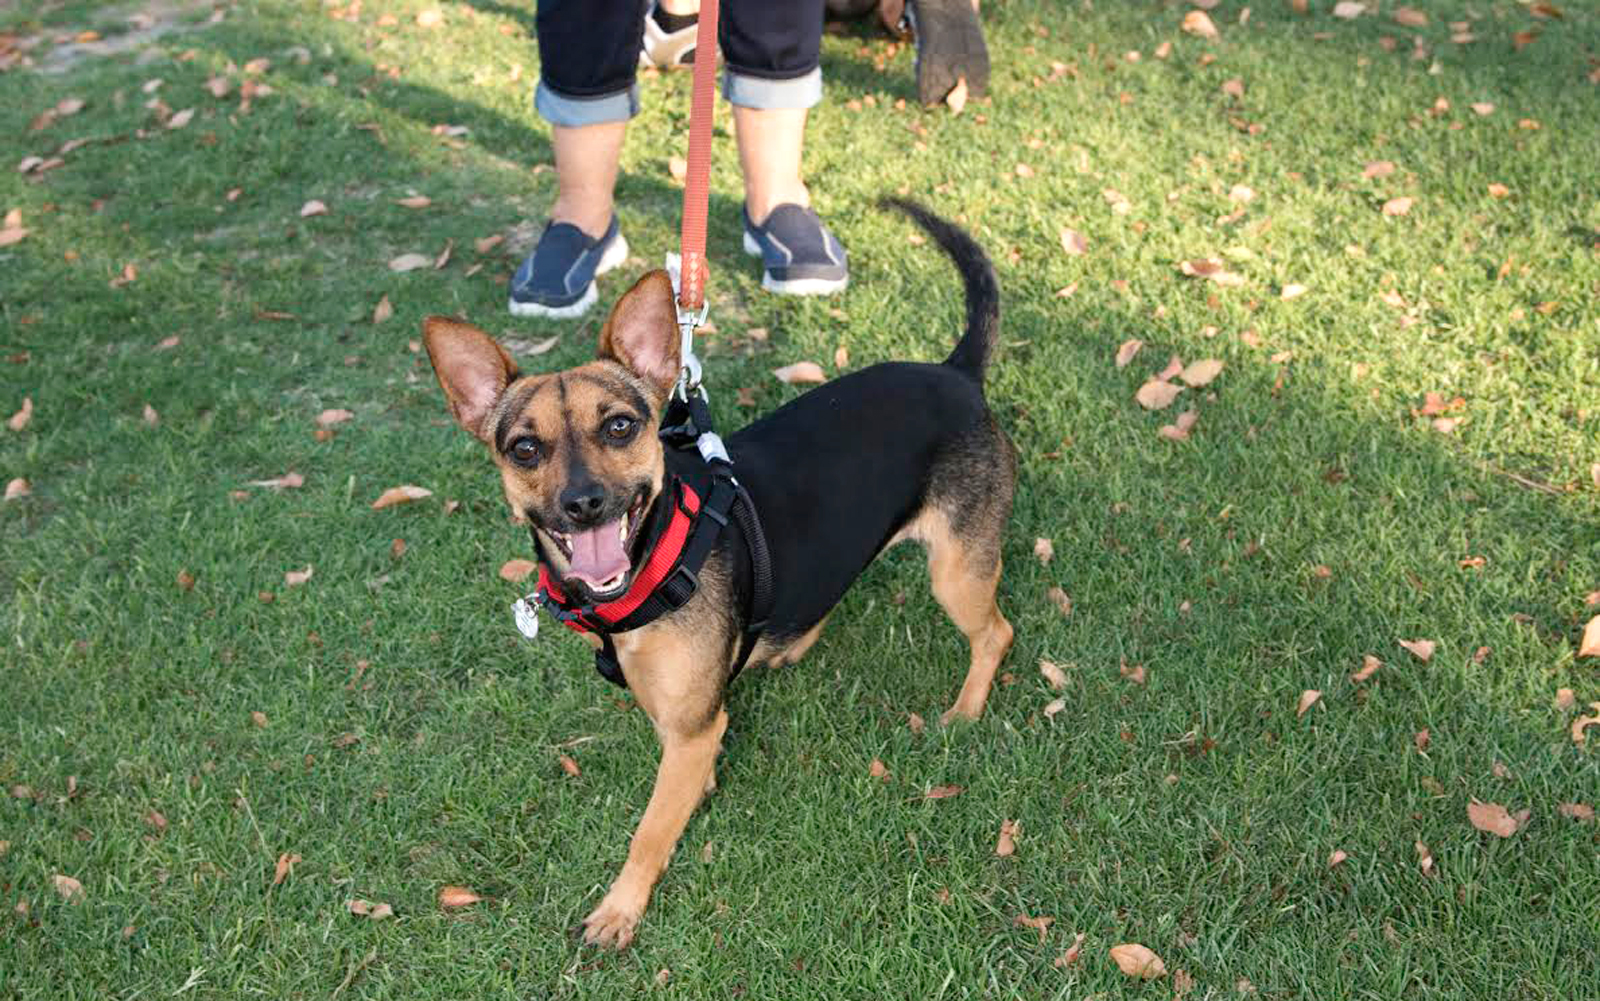 Chiklett is currently up for adoption at the Westin Mission Hills Golf Resort & Spa